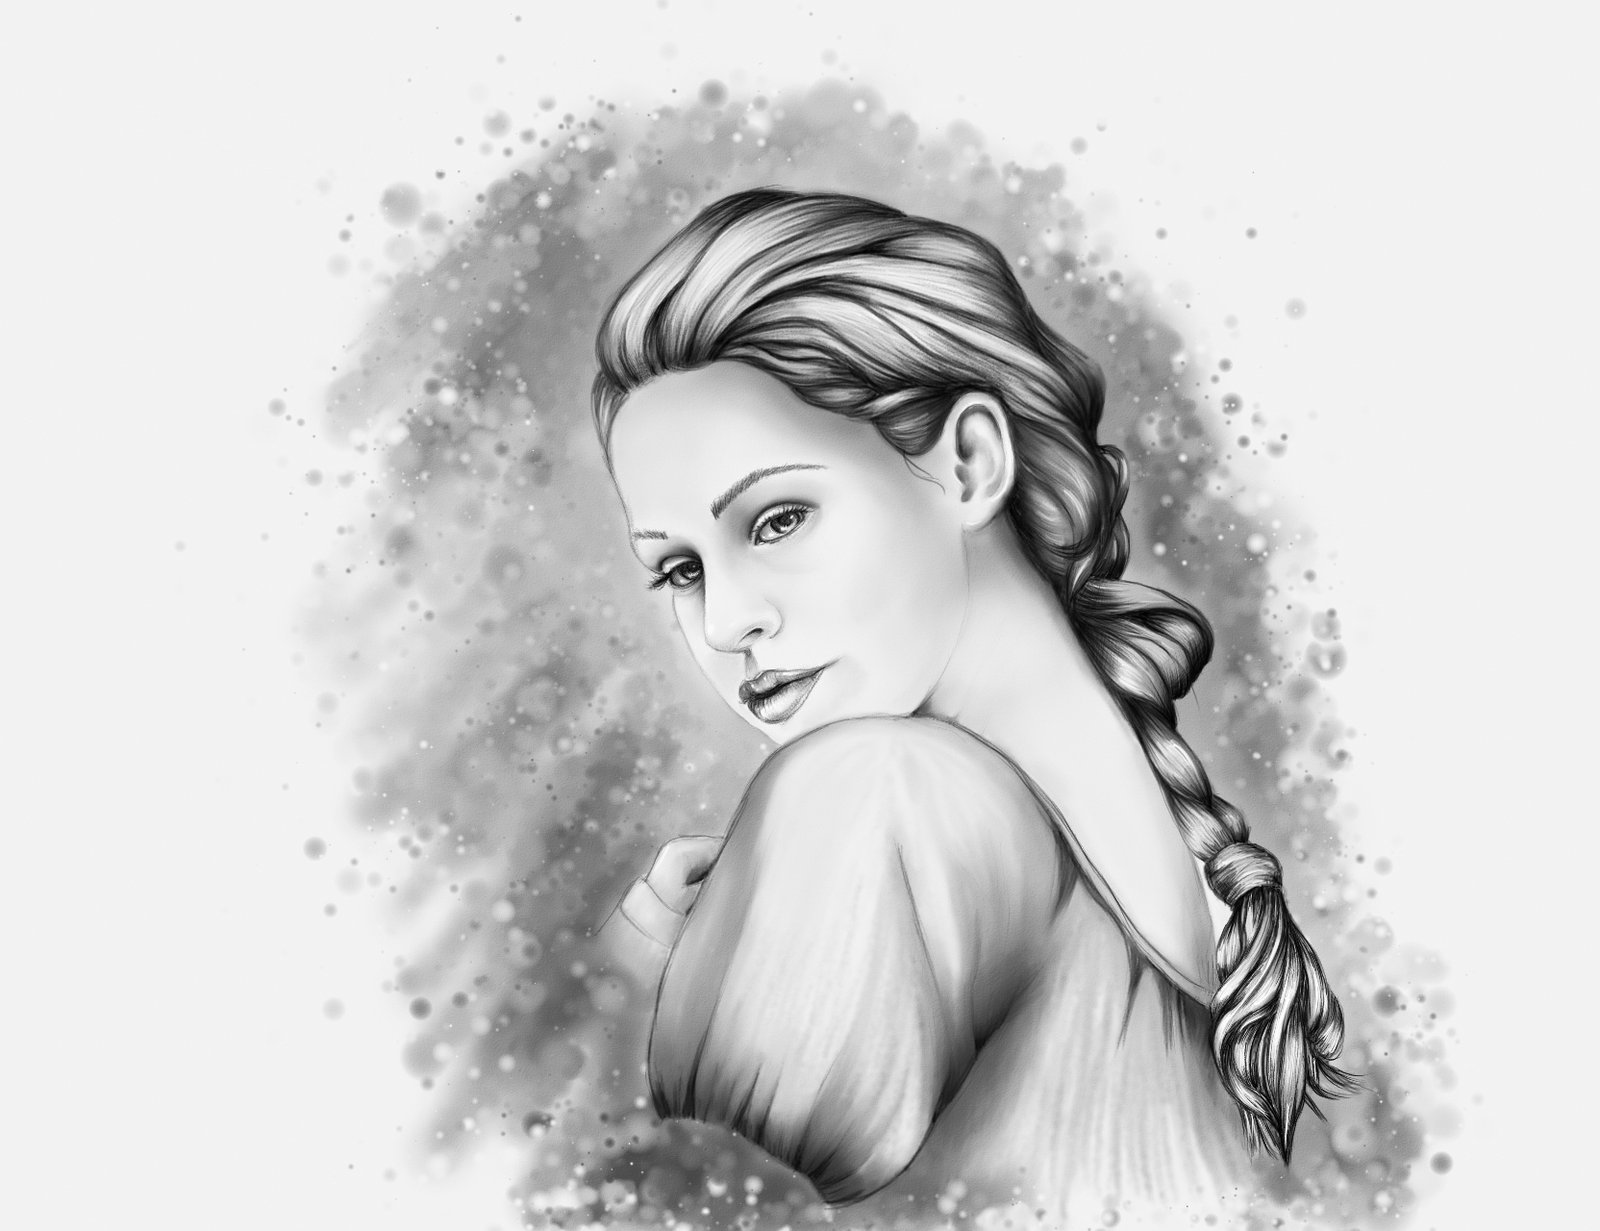 Pencil Drawing By Korolevatumana Deviantart Com Portrait Background Pencil Sketch Portrait Pencil Portrait